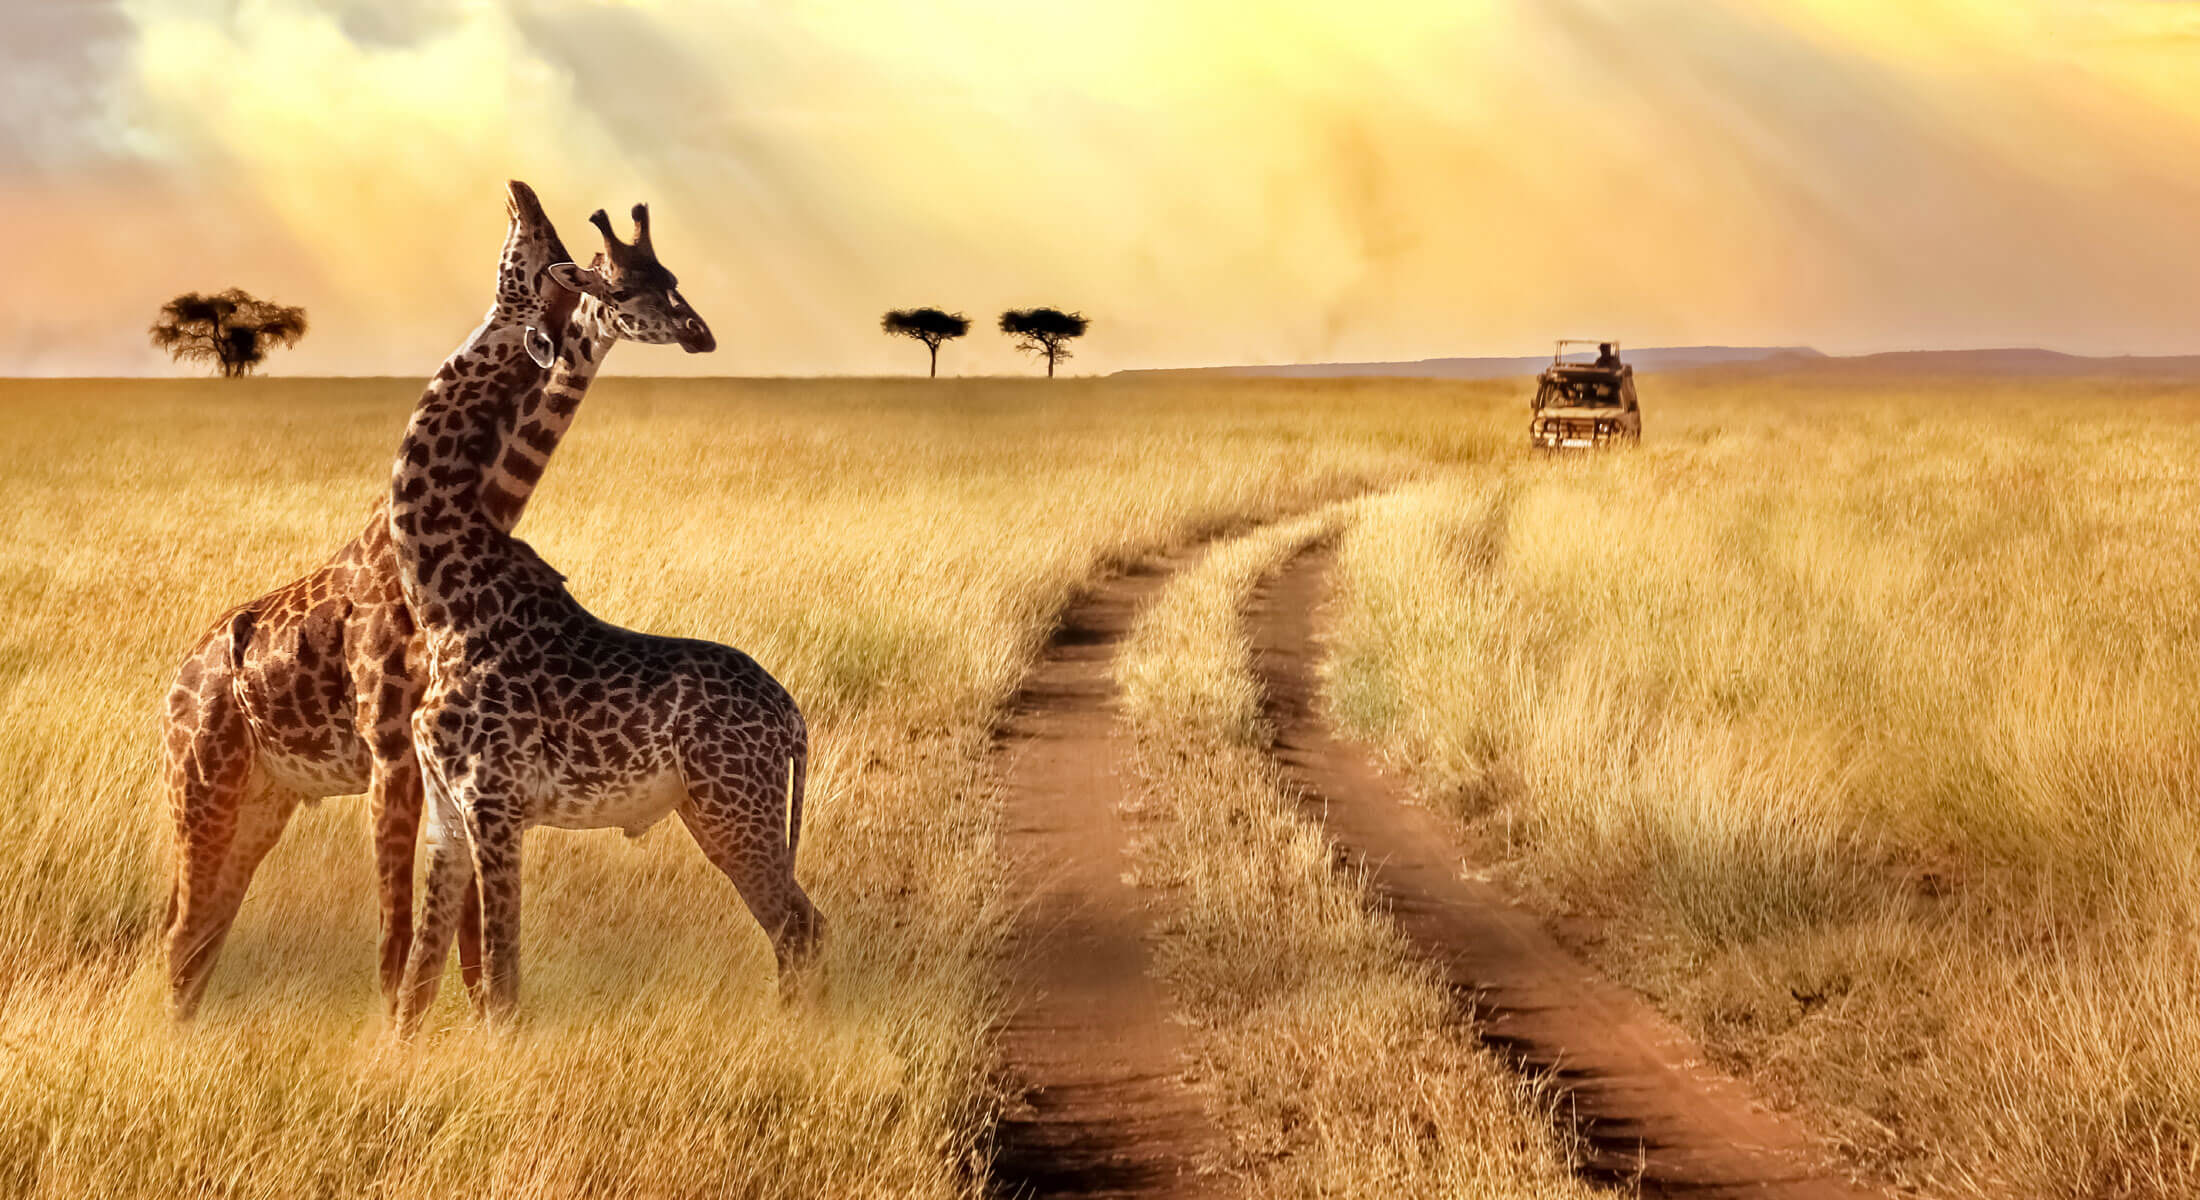 Two giraffes seen on a safari in Africa